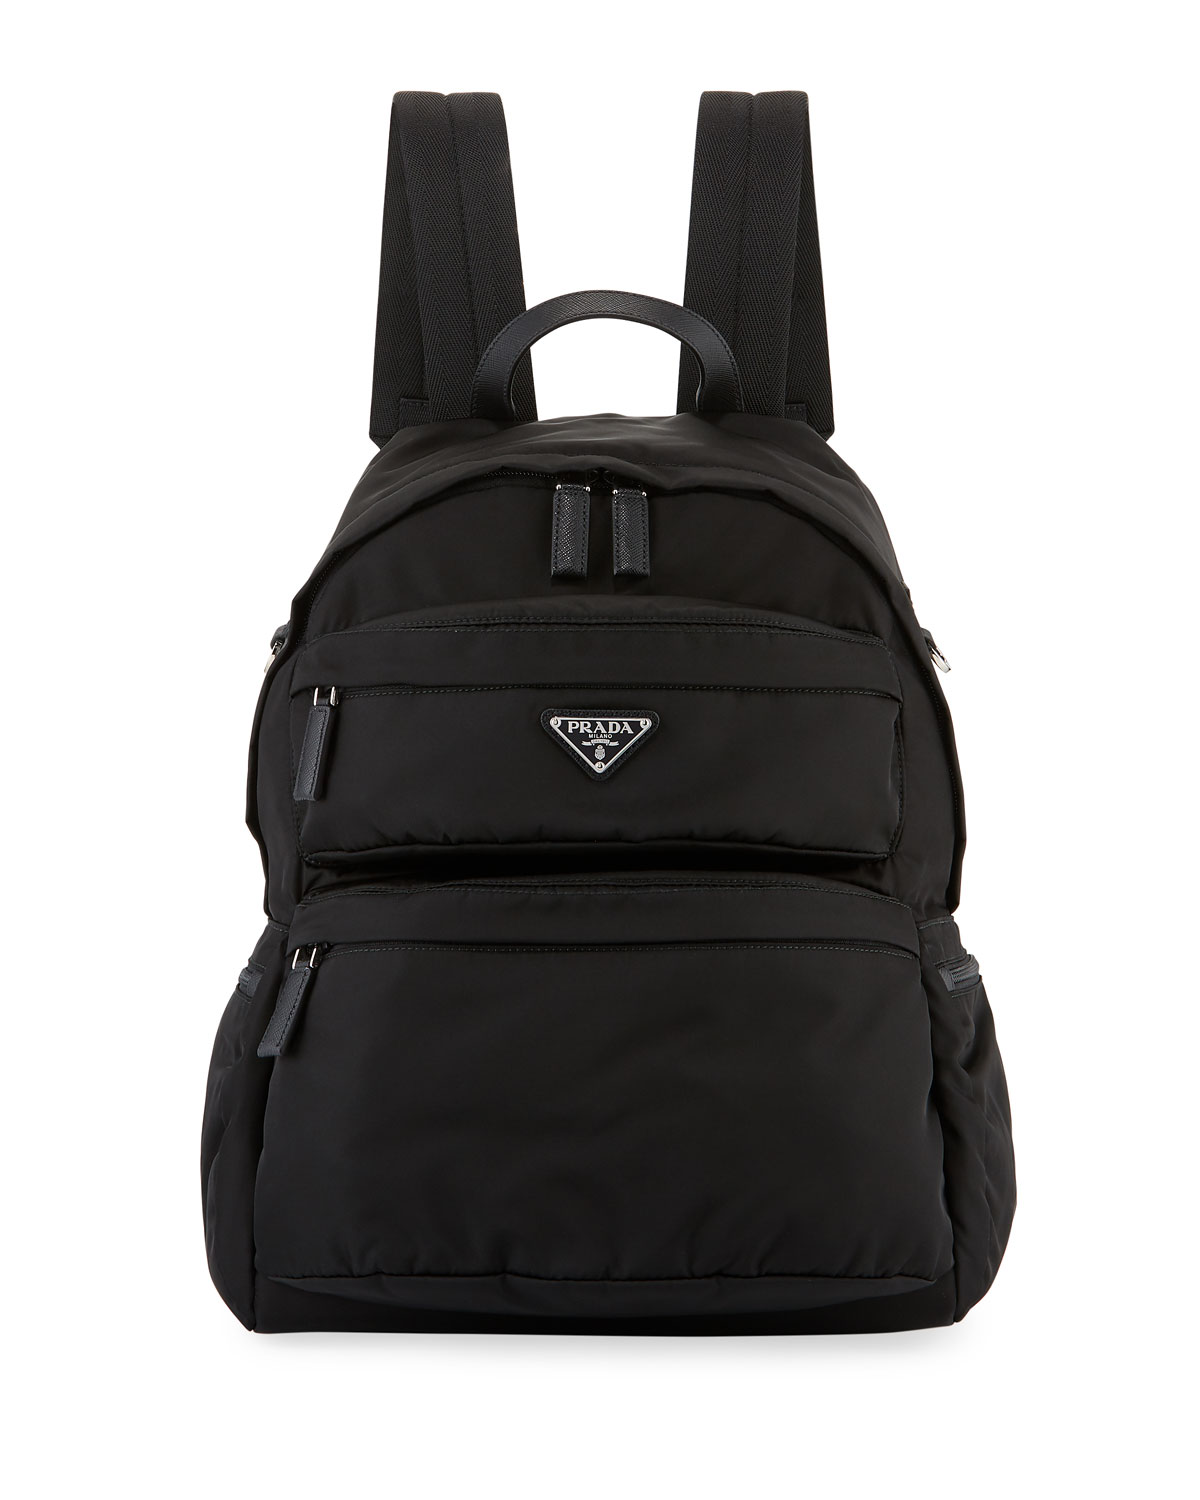 488685c42ff570 Buy prada backpacks for men - Best men's prada backpacks shop - Cools.com